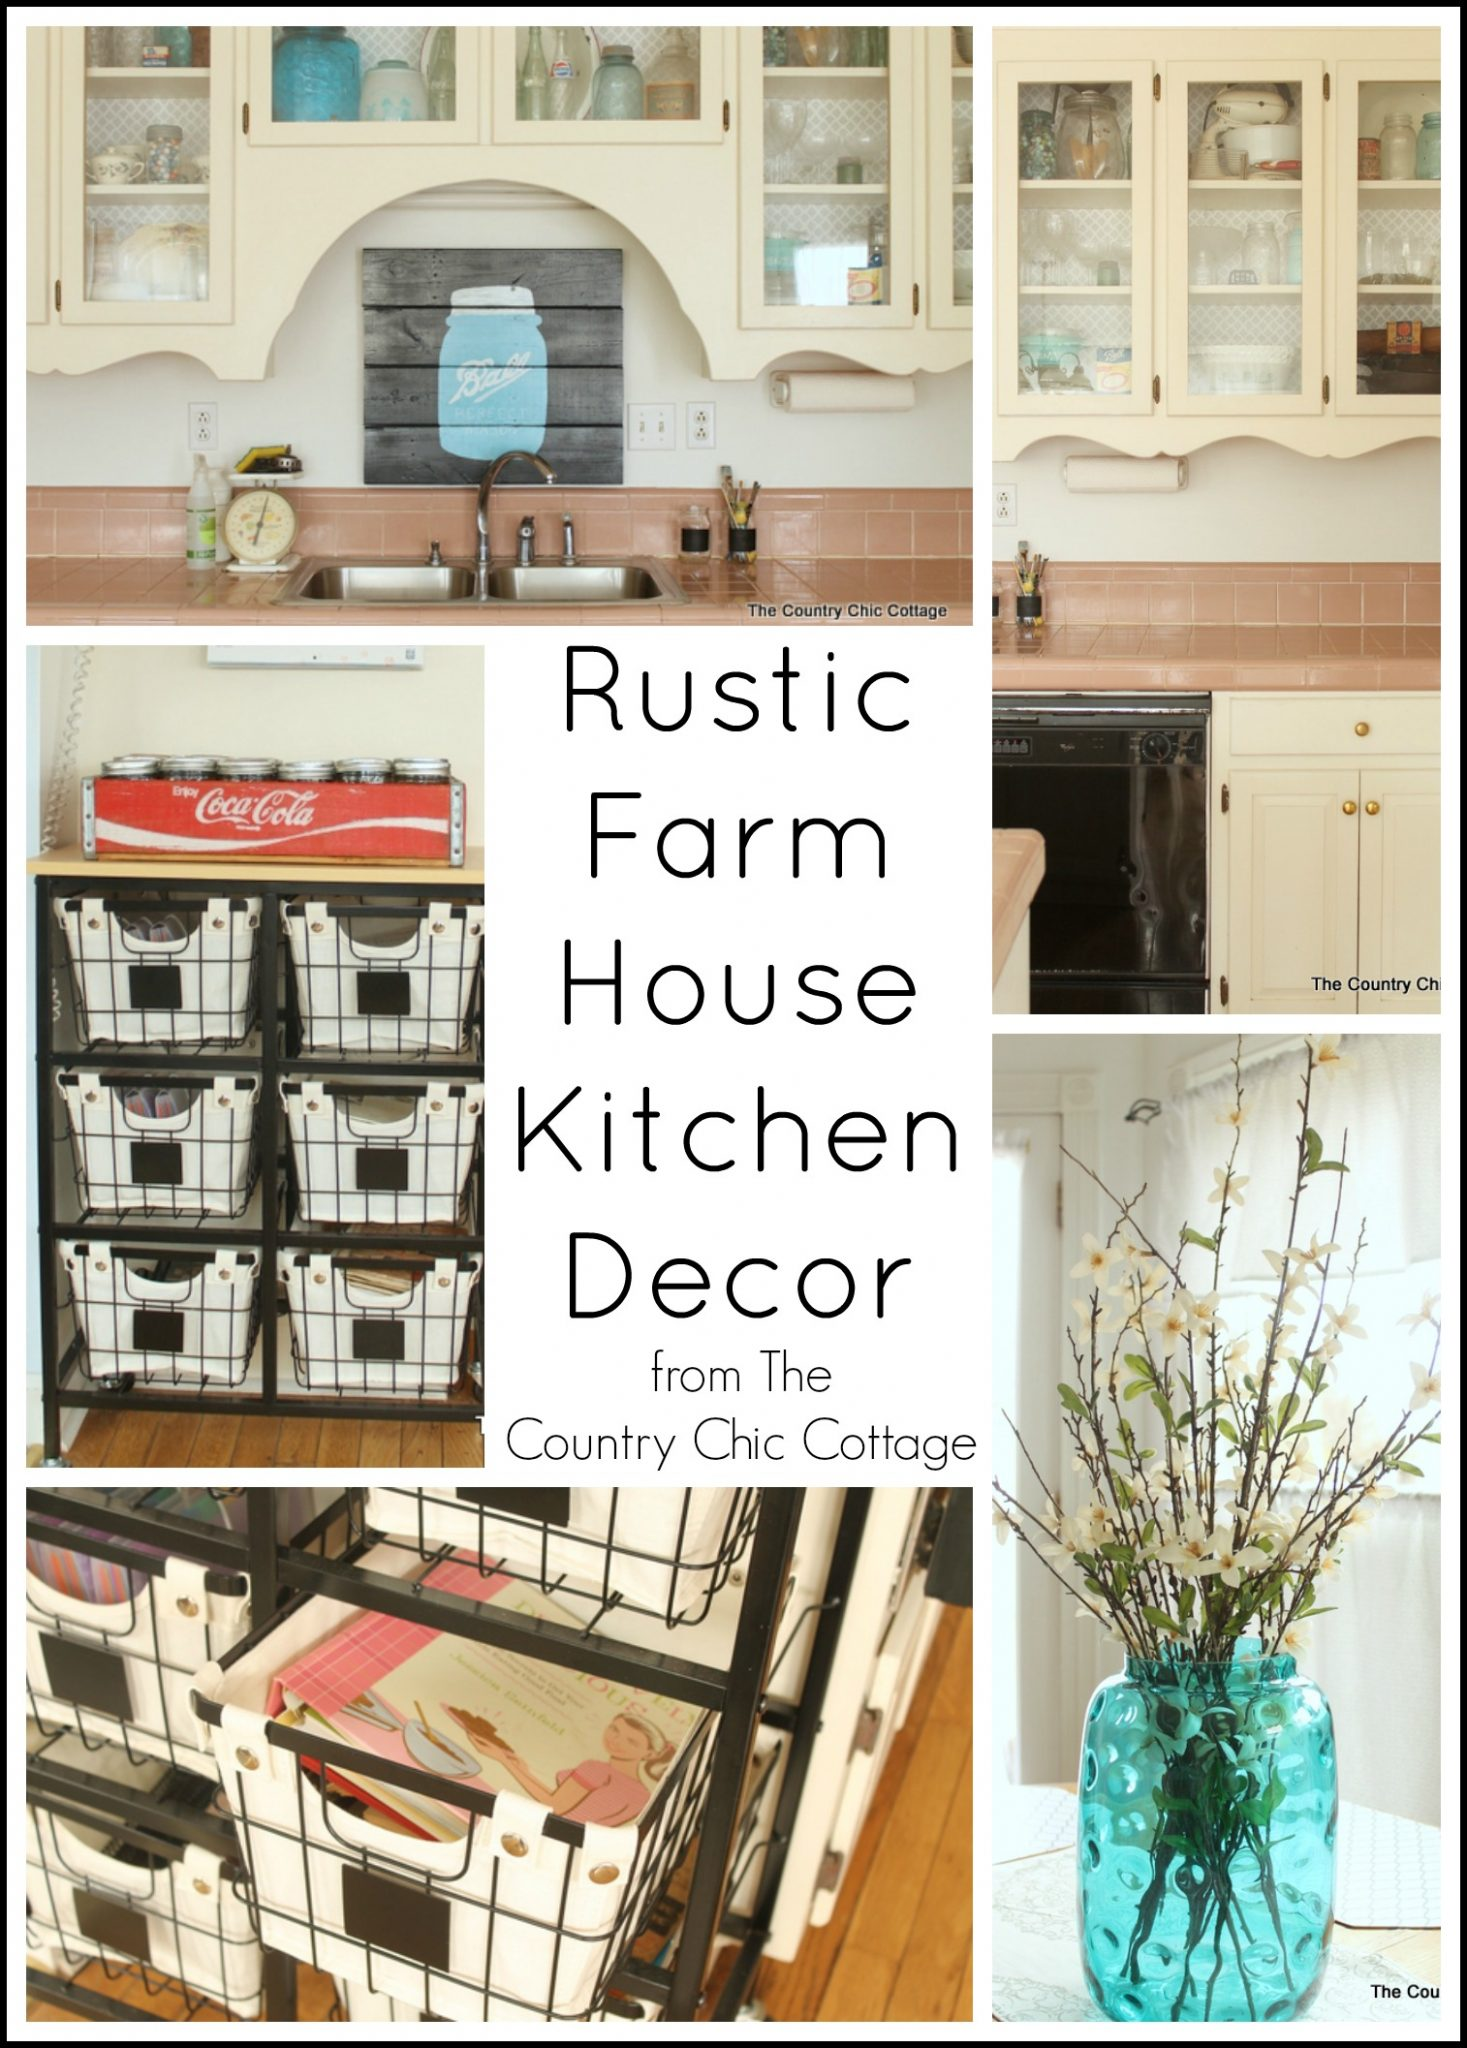 get great rustic kitchen decor ideas here ideas on storage decor and more - Farmhouse Kitchen Decorating Ideas